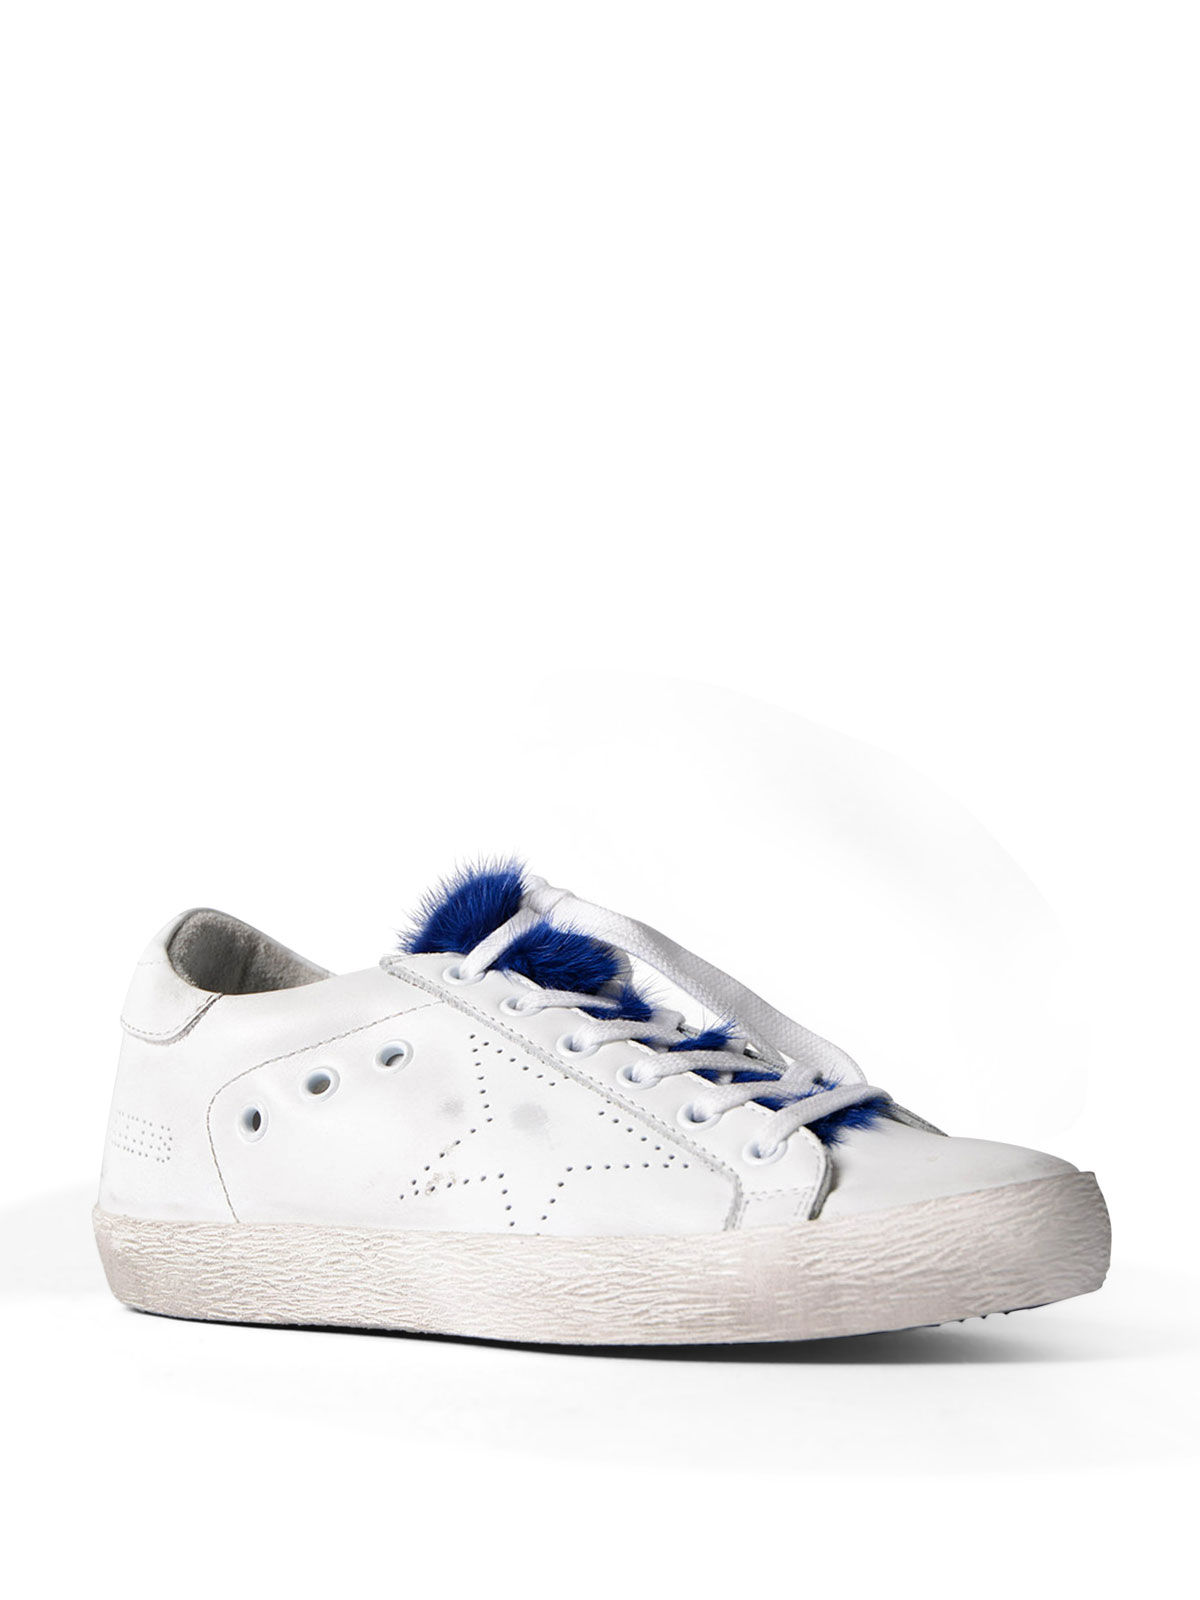 Golden Goose Fur detail sneakers Cheap Footlocker Pictures Cheap Sale Countdown Package High Quality Sale Online nfLZ1G